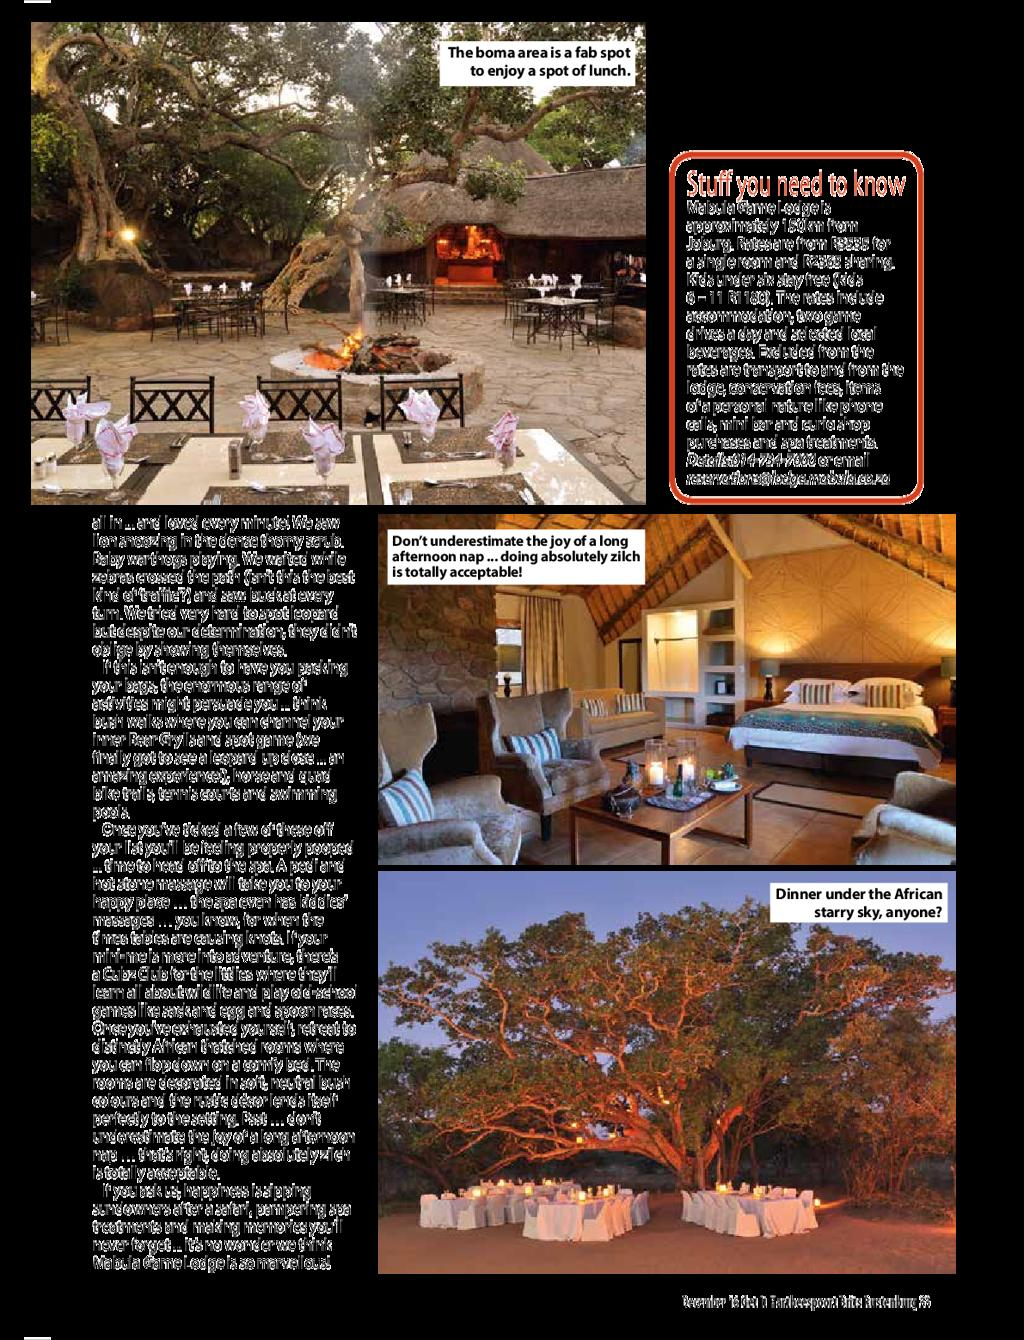 get-it-hartbeespoort-december-2016-epapers-page-35